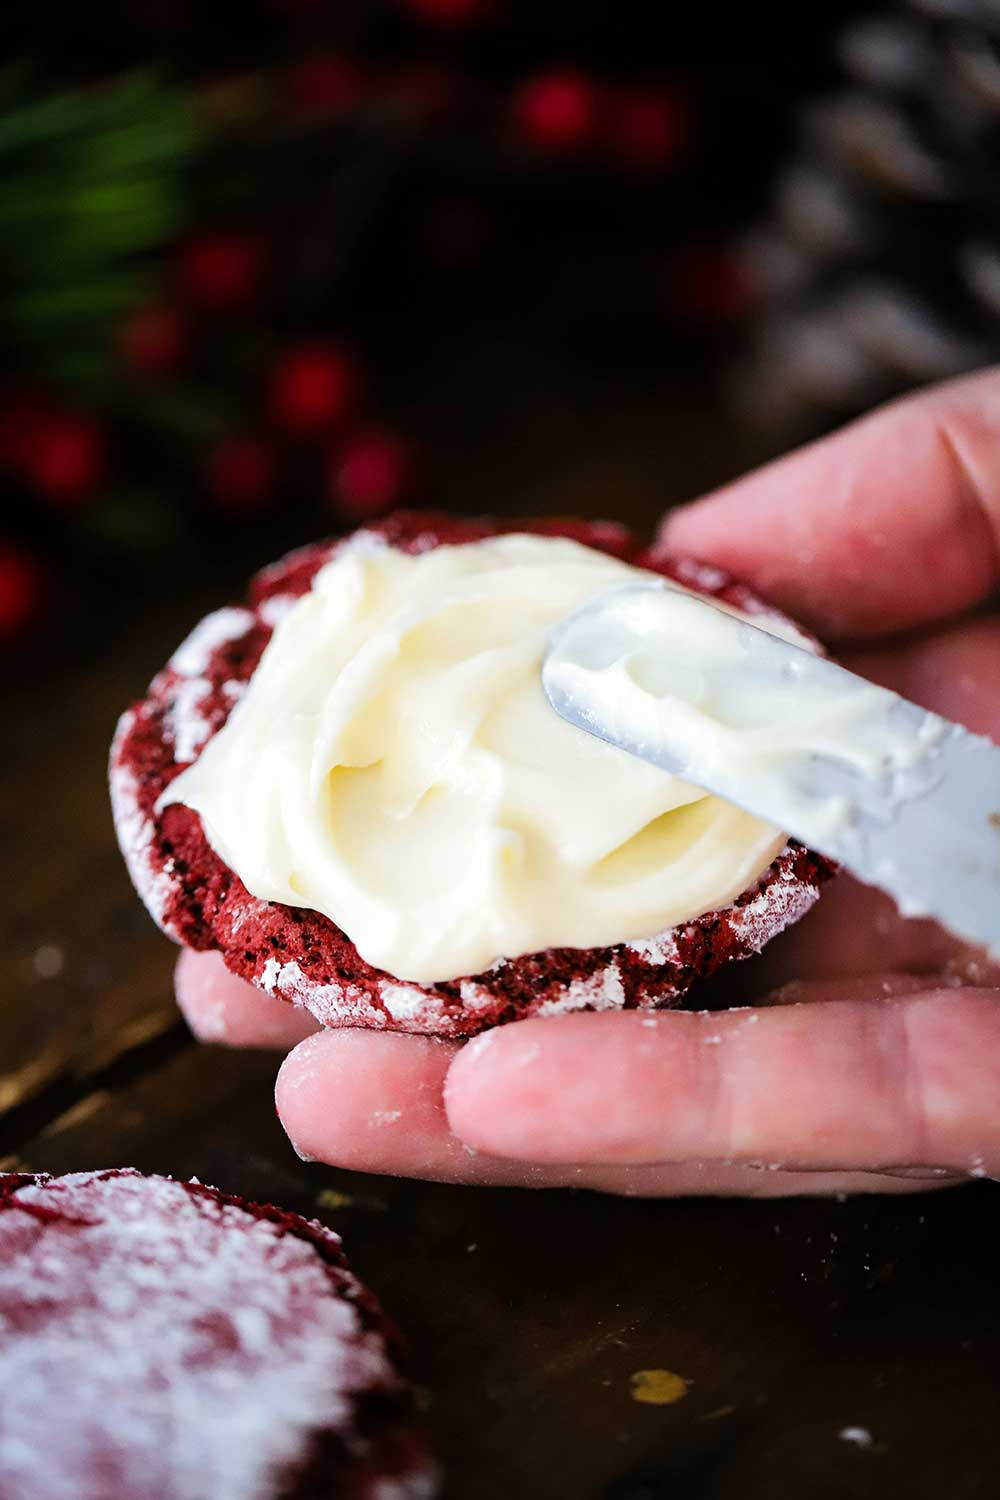 An off-set spatula spreading cream cheese frosting on the flat side of a red velvet cookie.